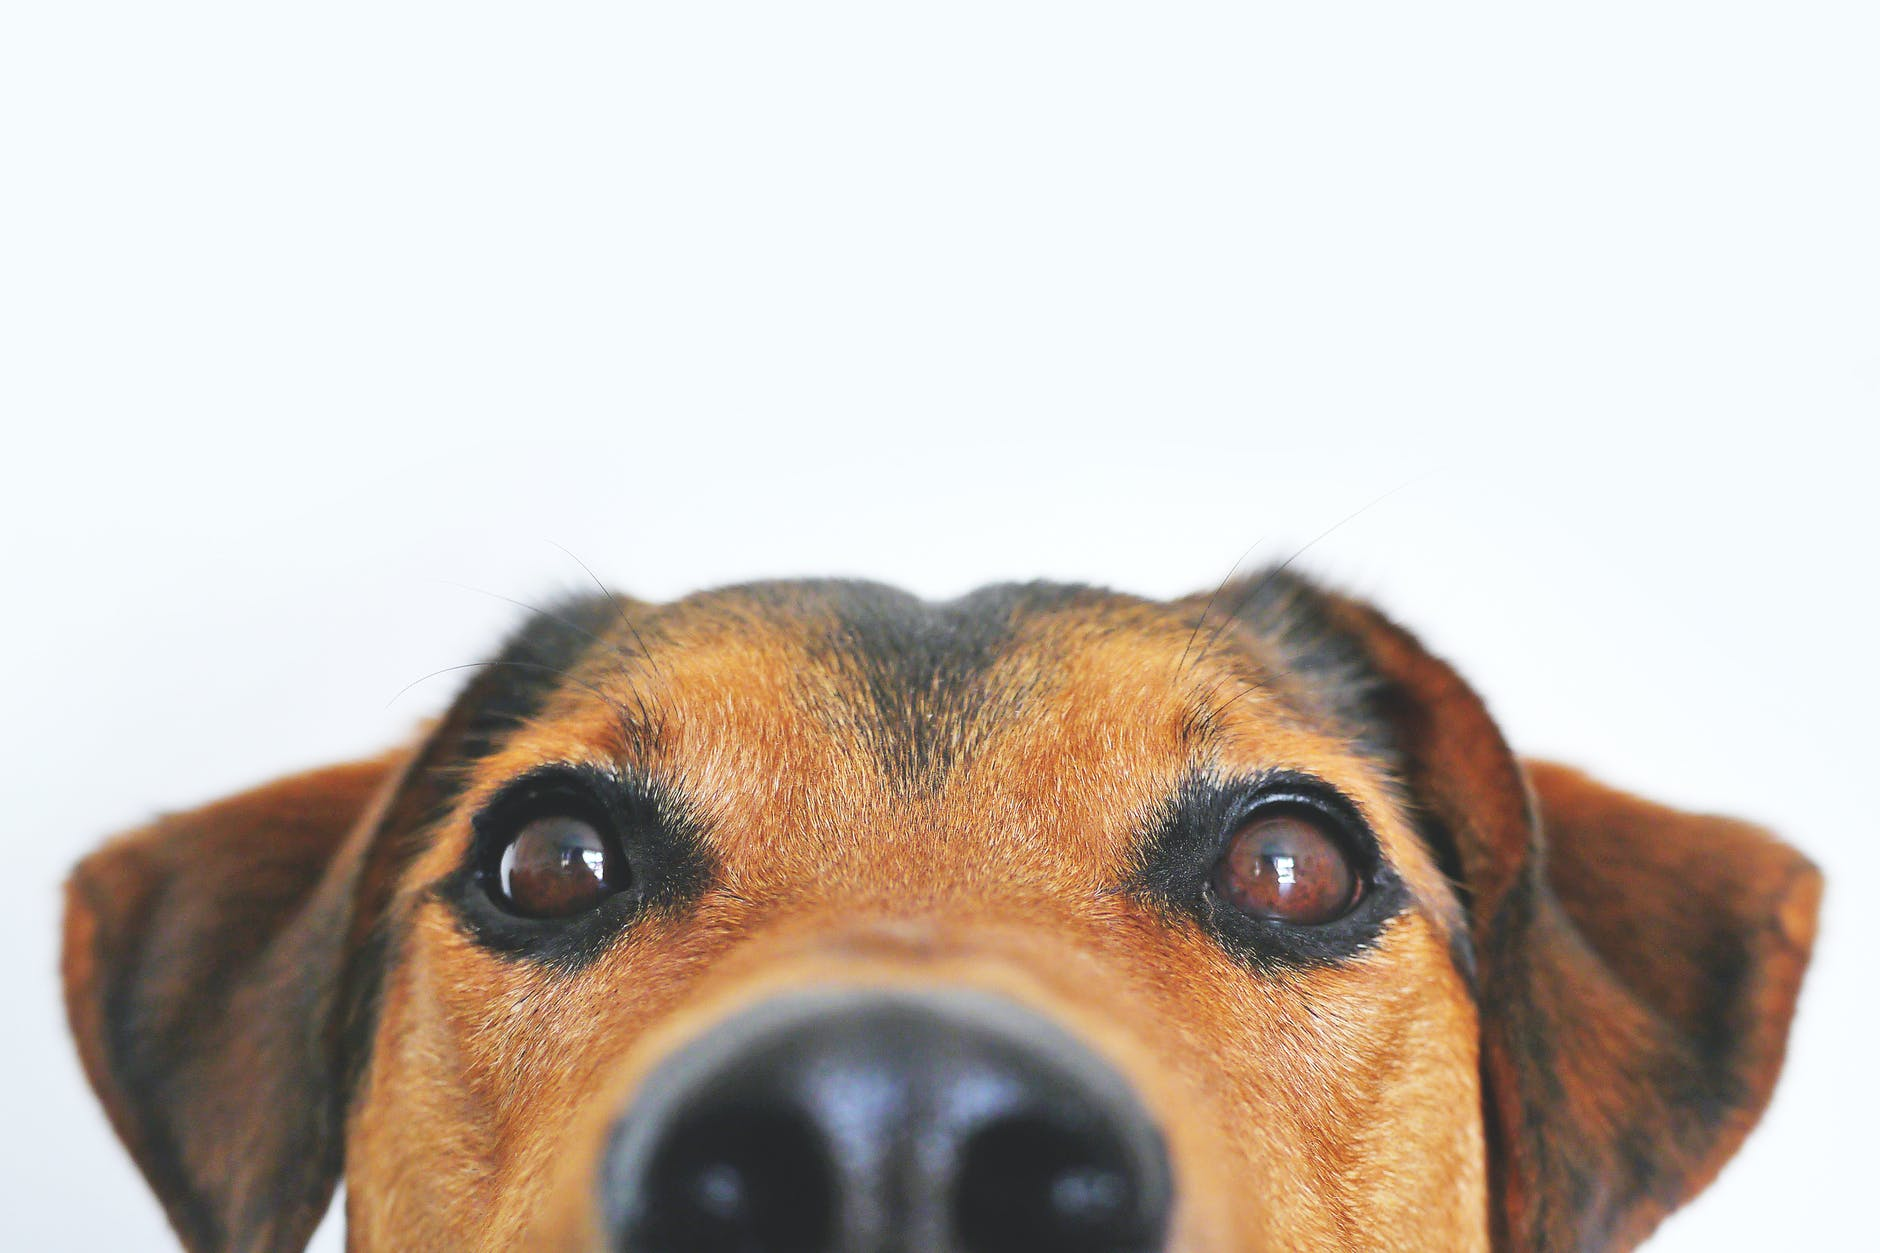 closeup photo of brown and black dog face